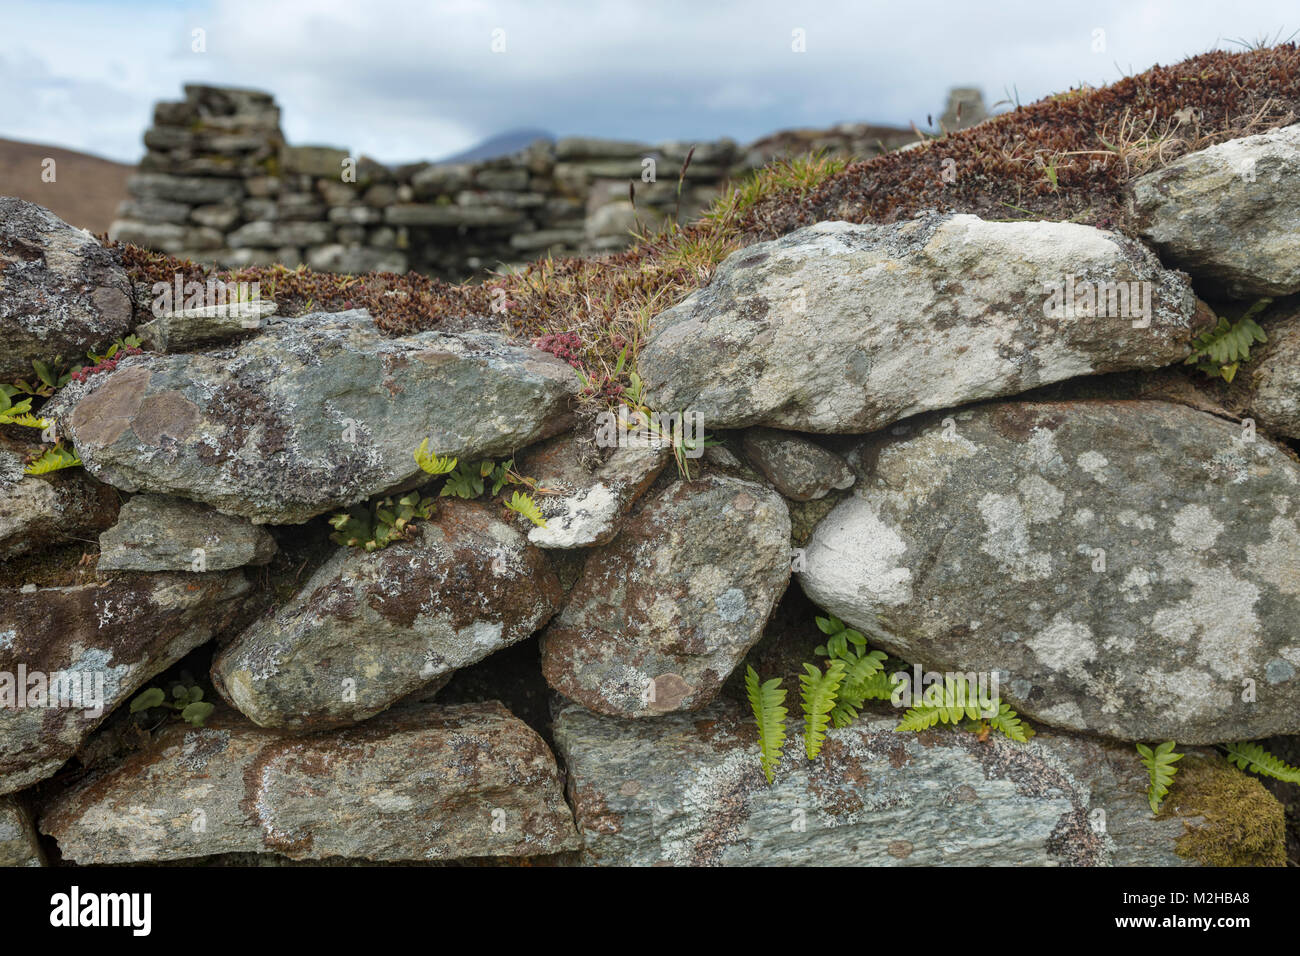 Ferns growing in a stone wall in Slievemore deserted village, Achill Island, County Mayo, Ireland. - Stock Image